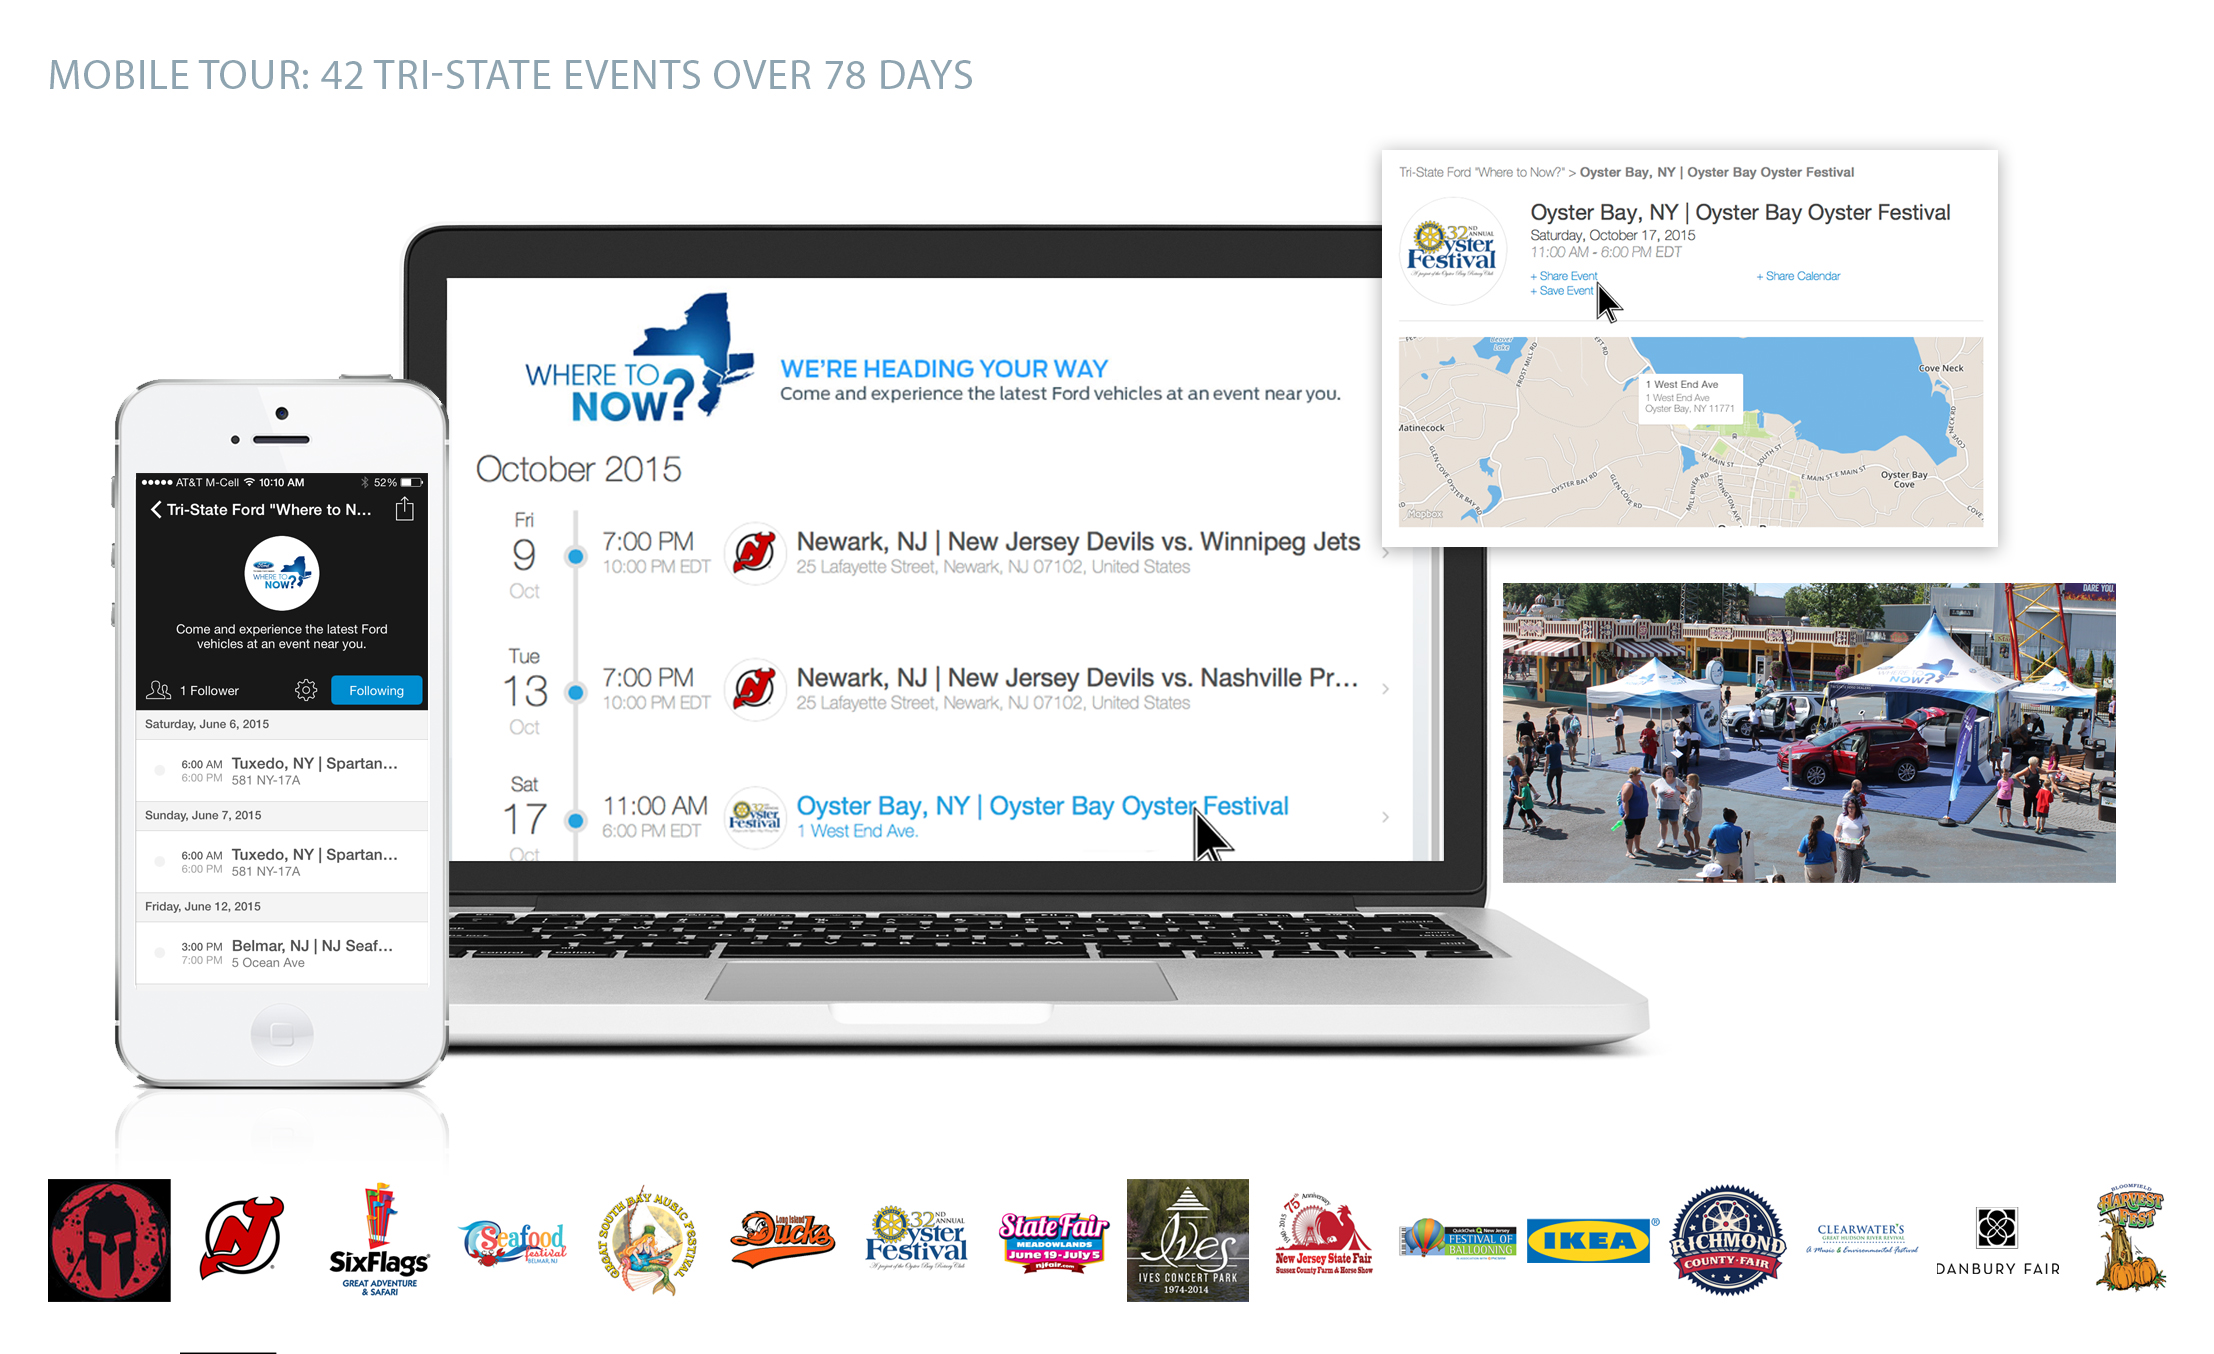 Mobile Tour Schedule